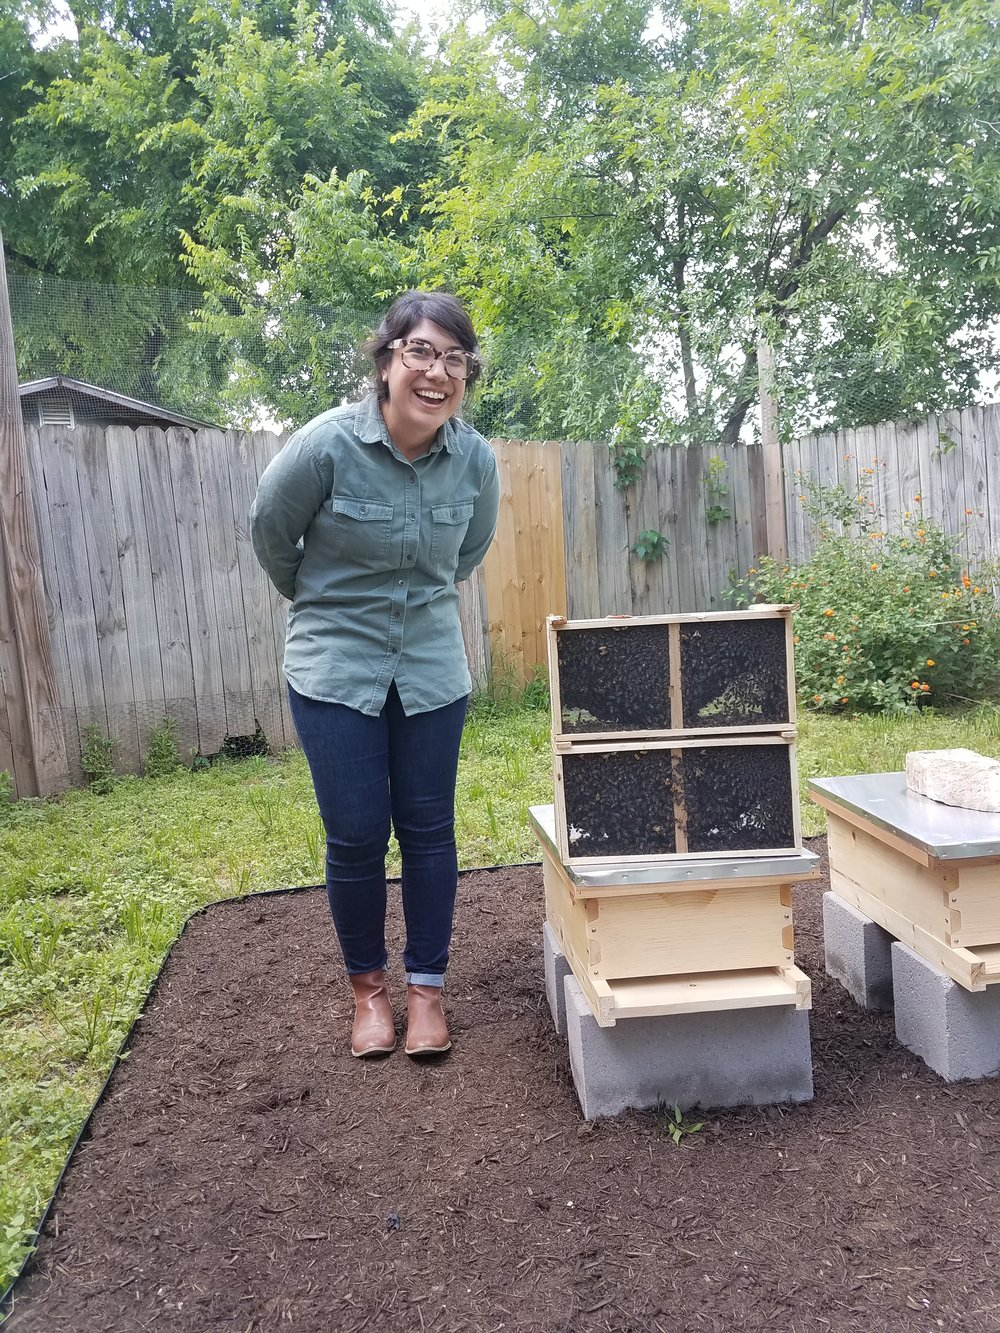 Look at Jackie and how excited she is about her two new package of bees!